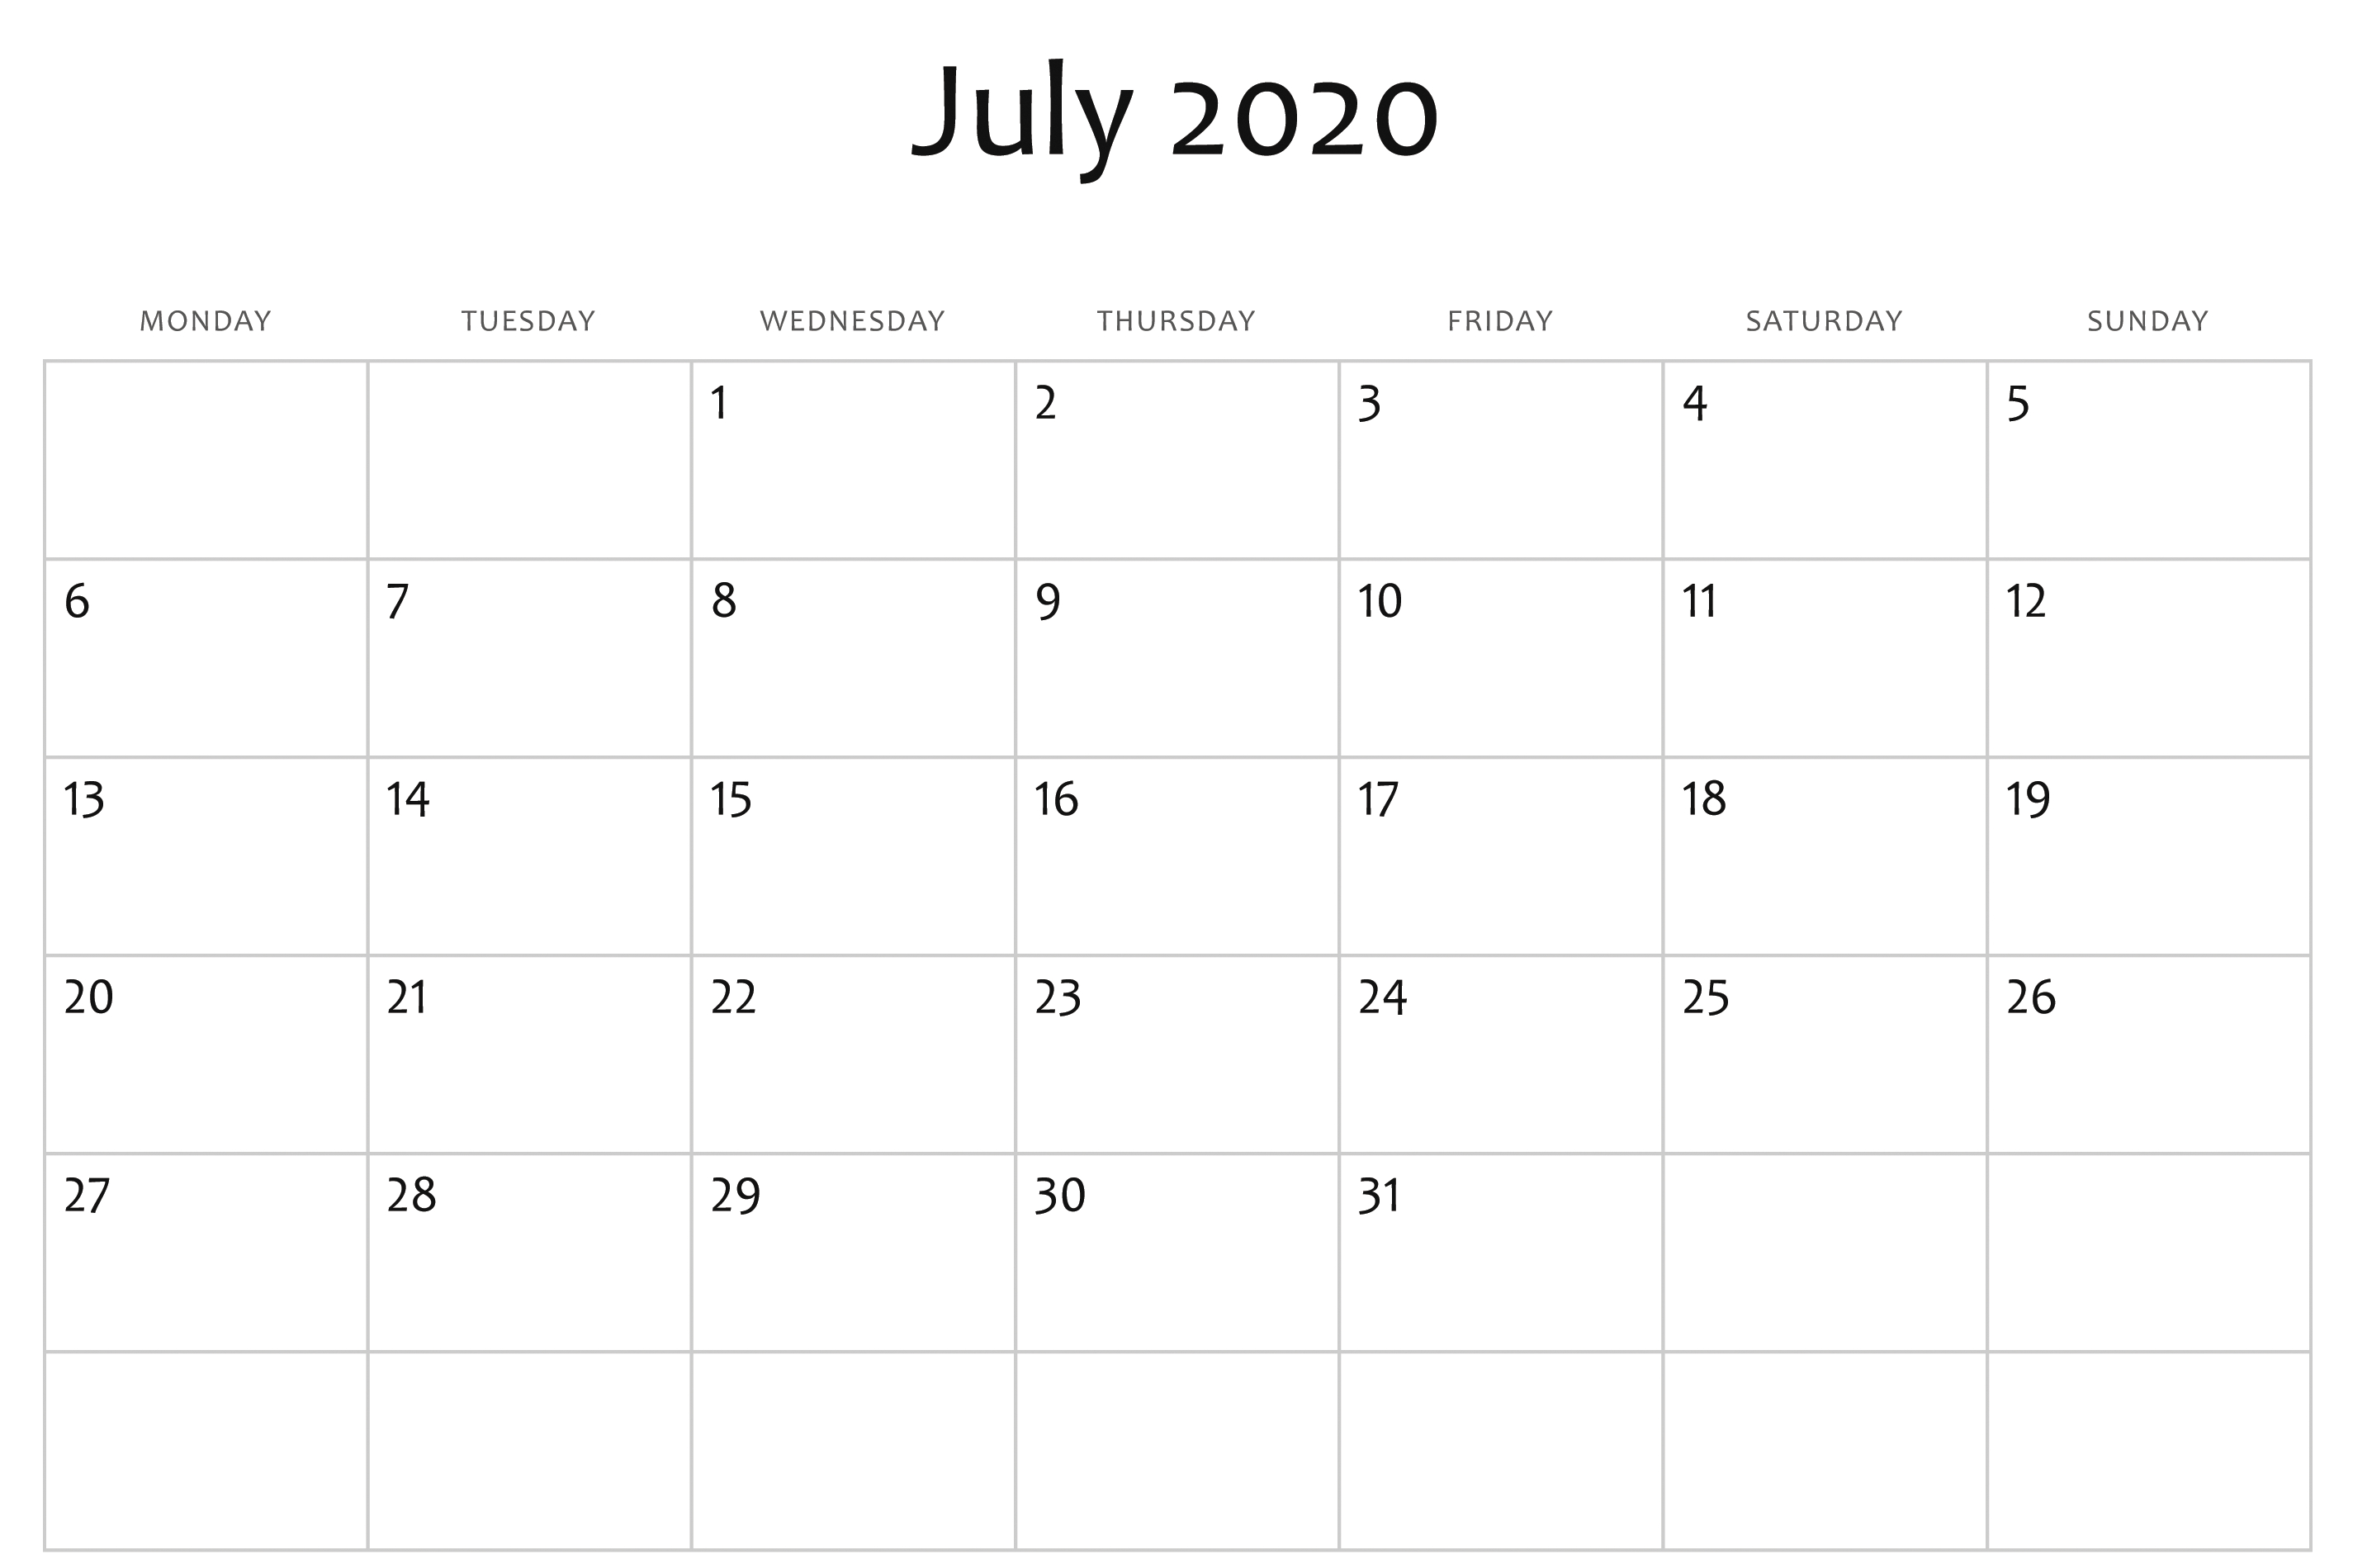 July 2020 Calendar Word | July Calendar, Free Printable regarding 2020 Calendar Template Word